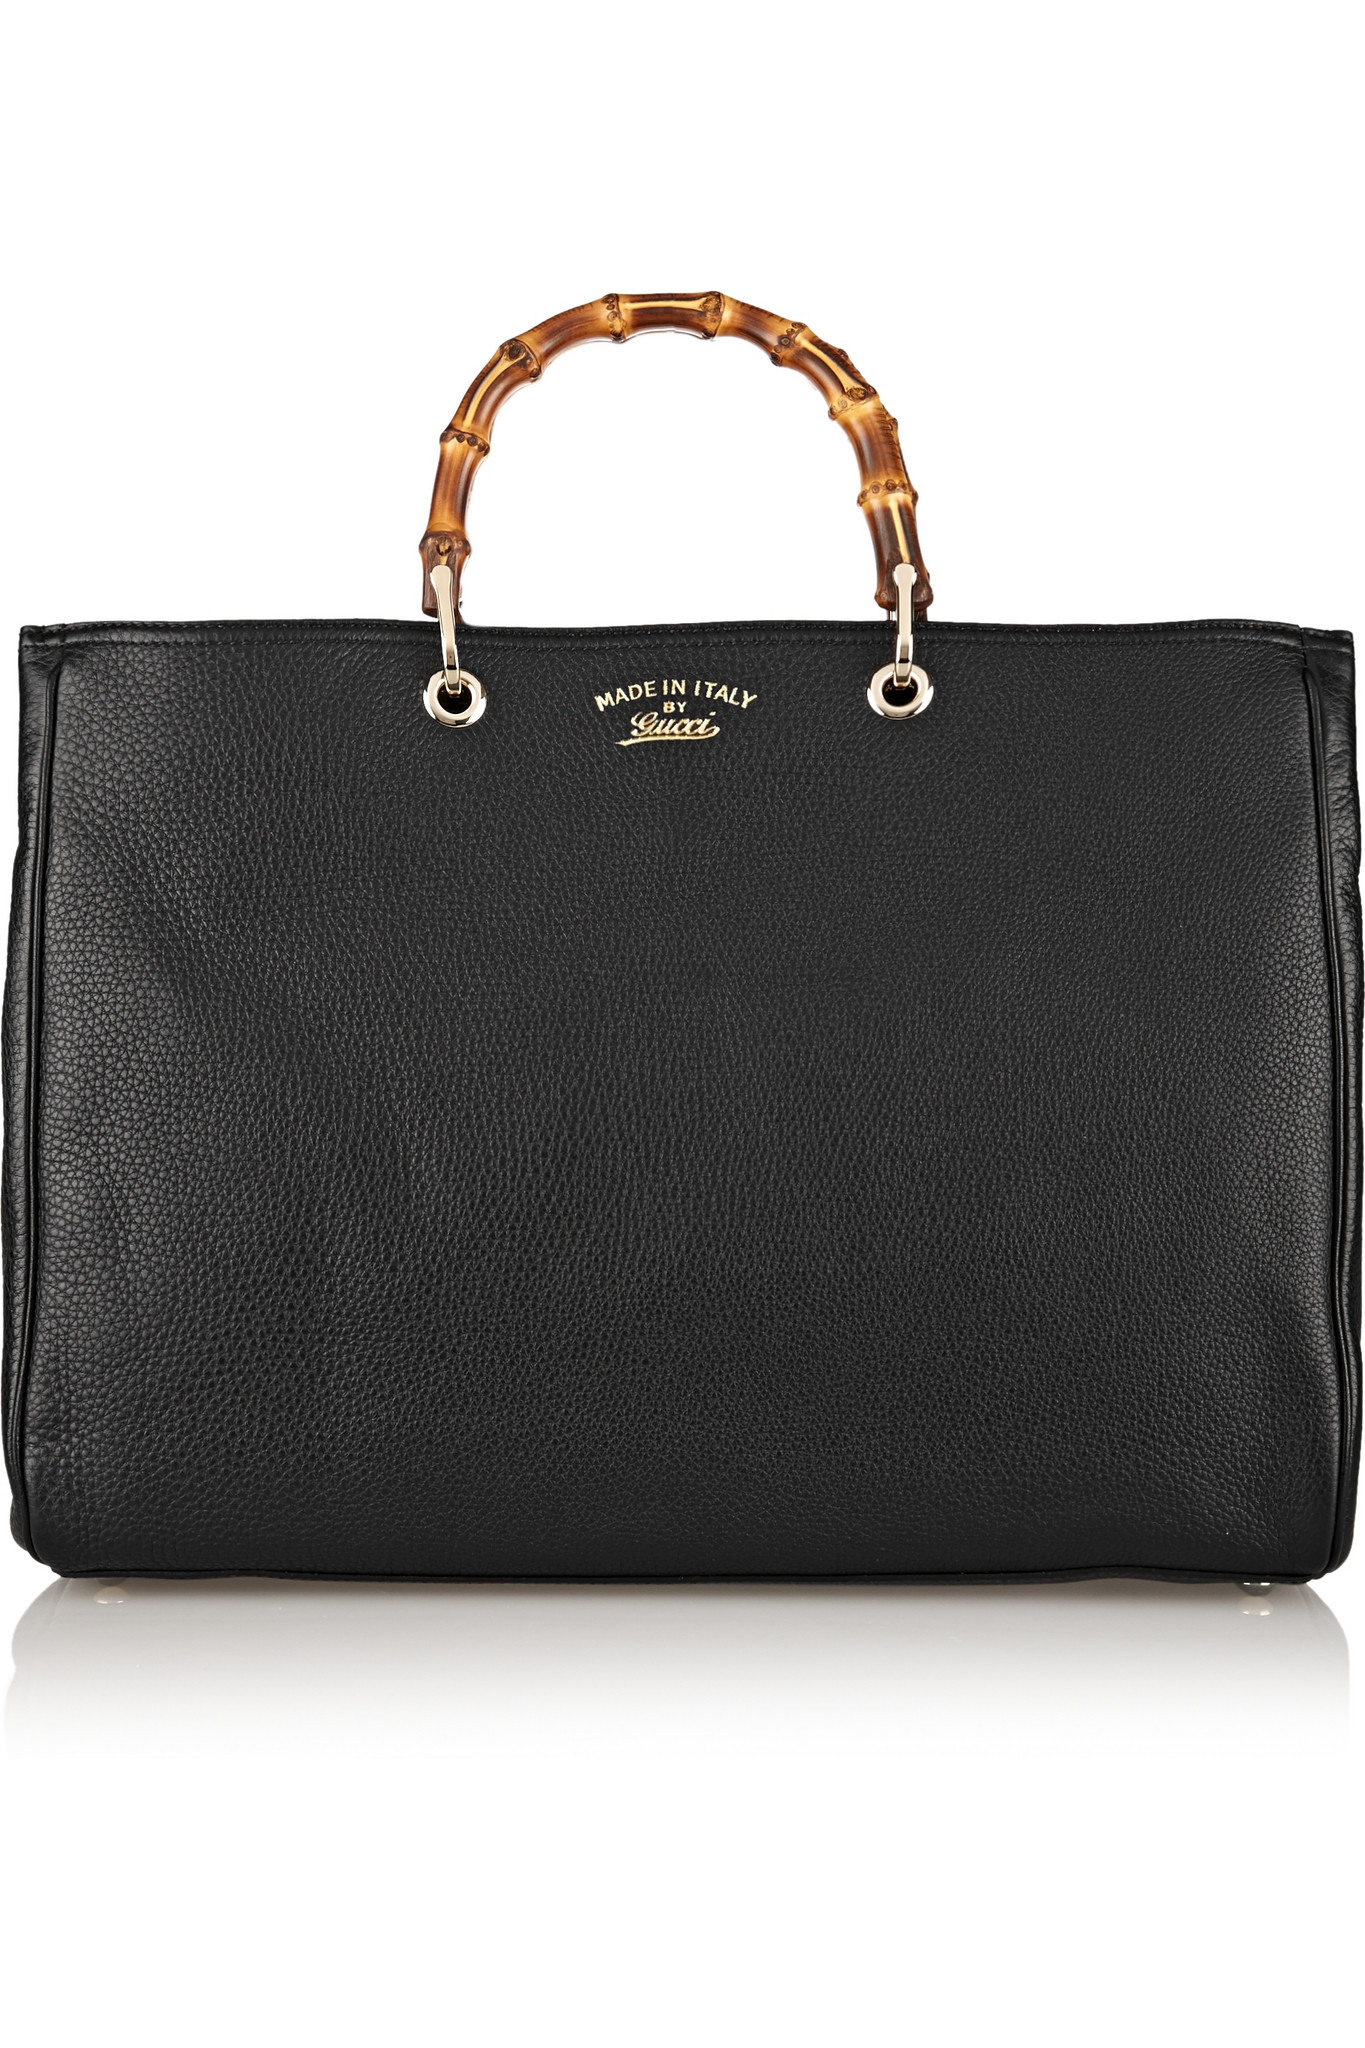 gucci bamboo shopper large textured leather tote in black lyst. Black Bedroom Furniture Sets. Home Design Ideas